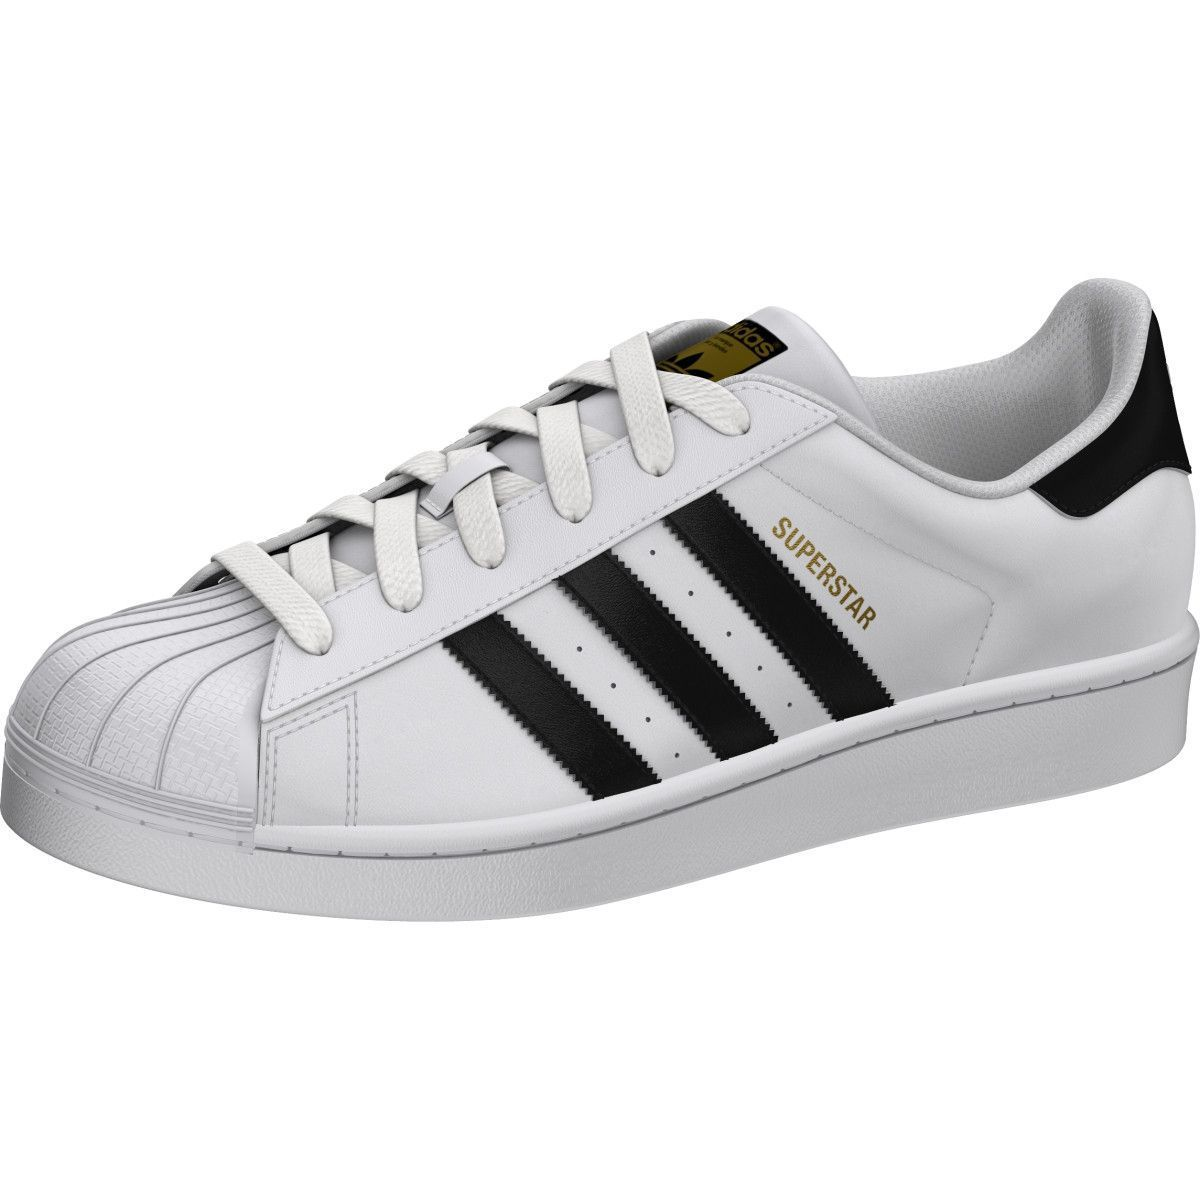 efd3099c665 WOMENS ADIDAS SUPERSTAR SNEAKERS